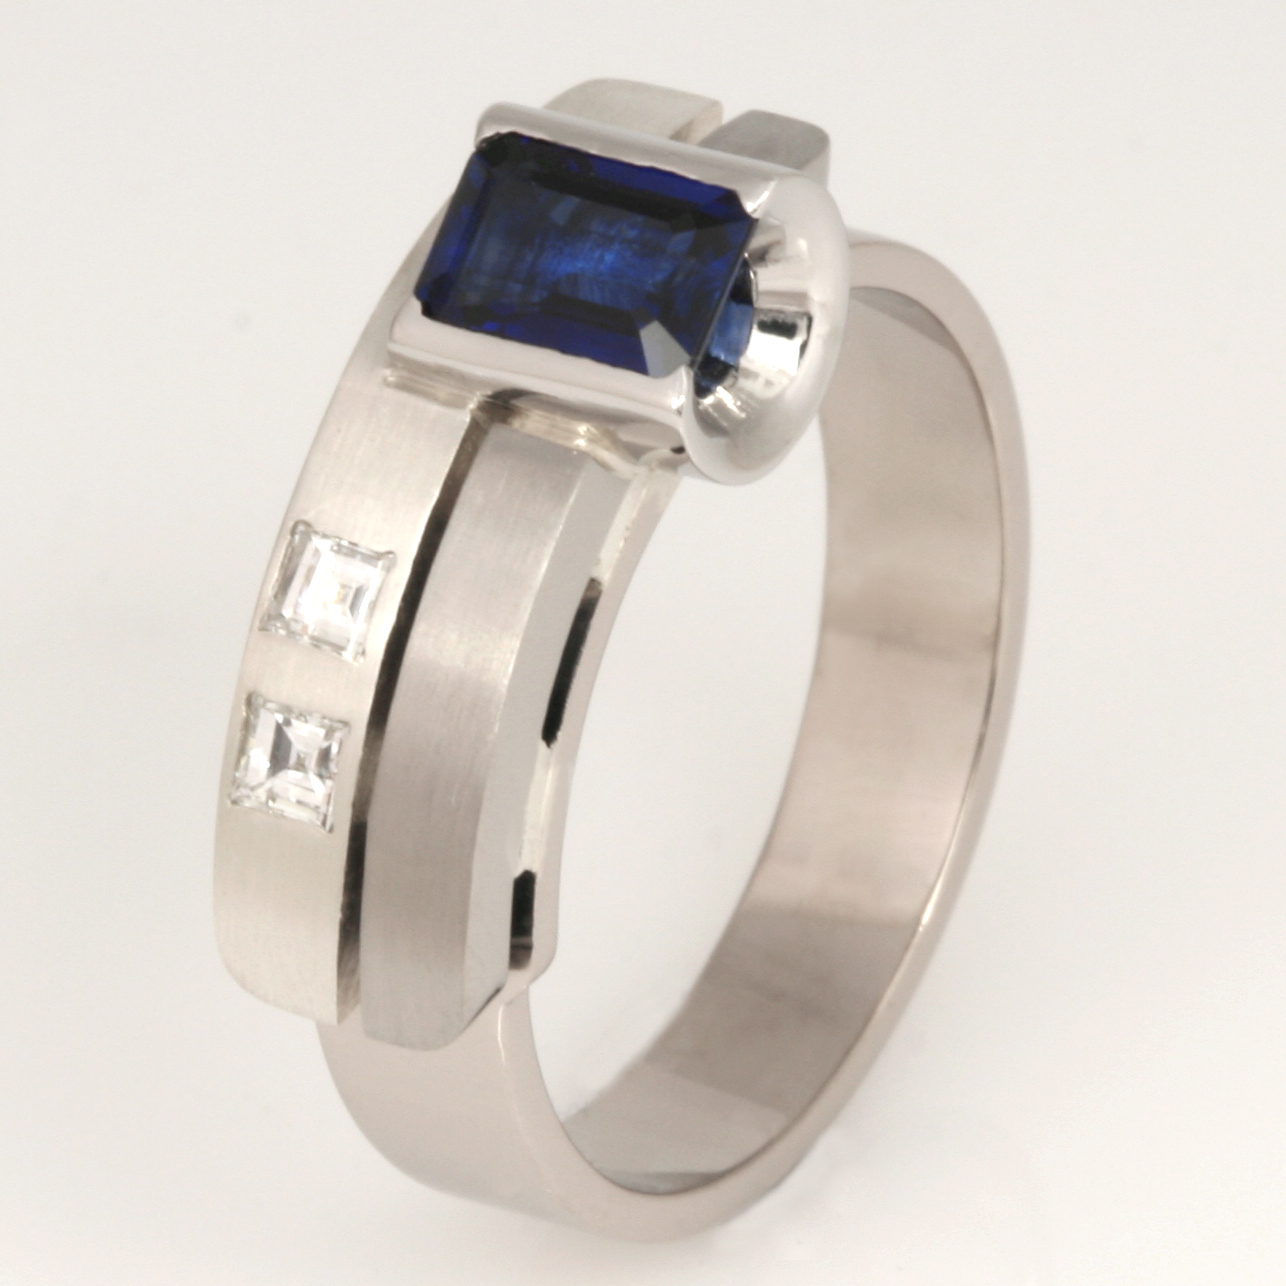 Handmade ladies 18ct and 9ct white gold 'Archie' ring featuring Ceylon sapphire and diamonds